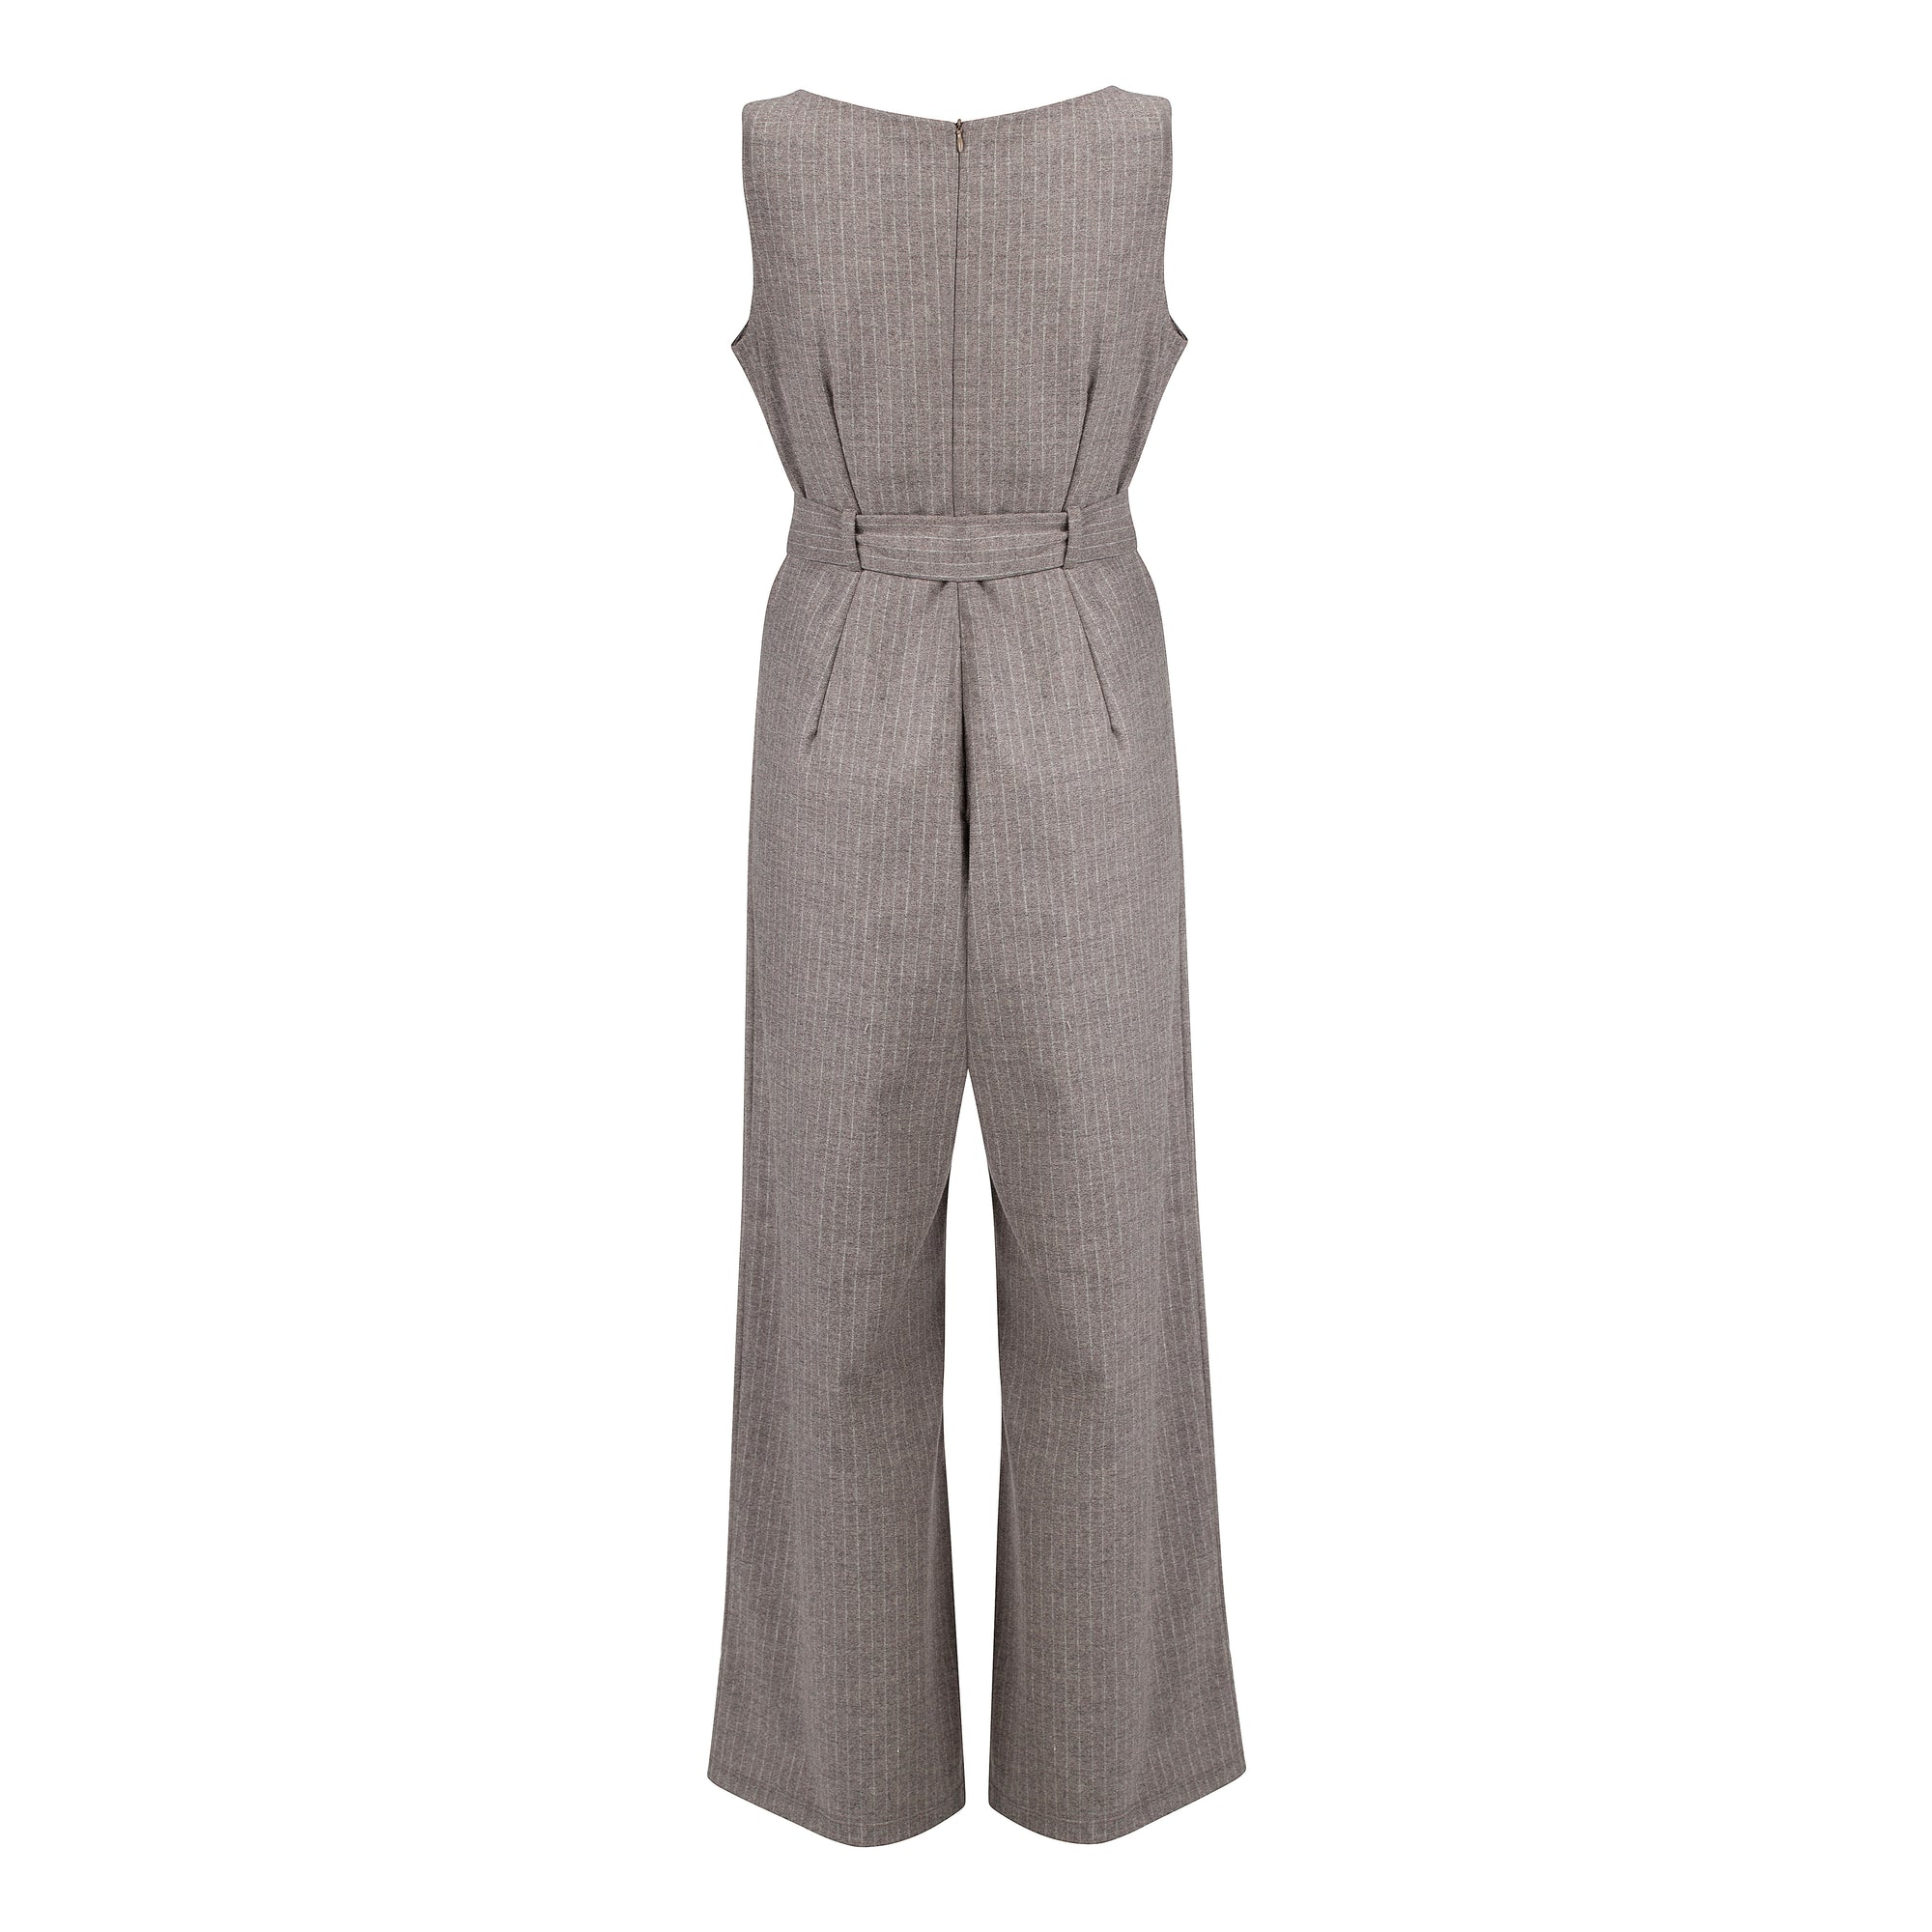 Memory Wool Jumpsuit | Dresses & Jumpsuits | Rhumaa | [product_tag] - Fair Bazaar Ethical Living